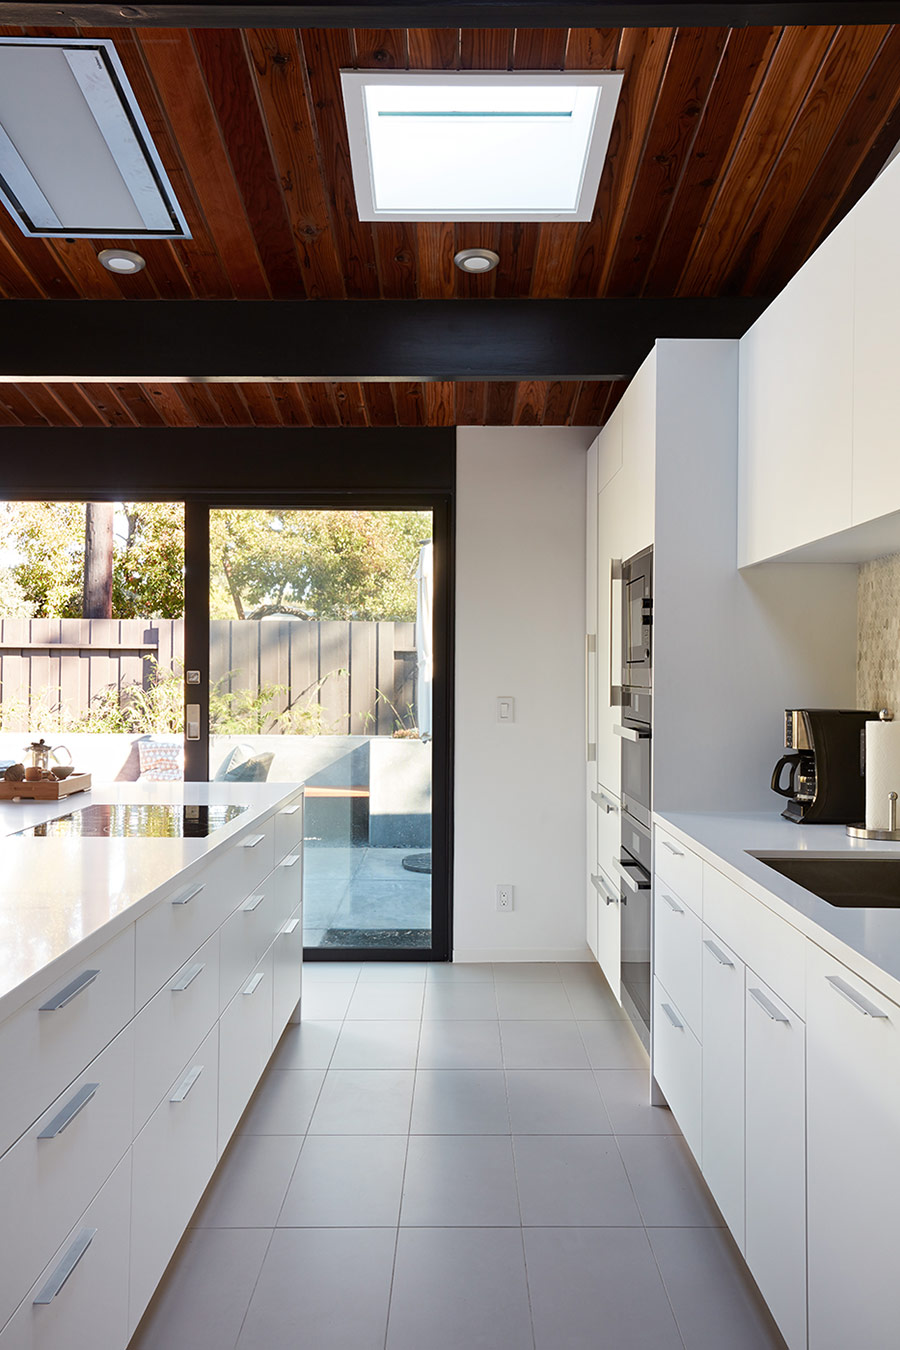 A glazed wall that can be opened and skylights in the ceiling bring much light inside